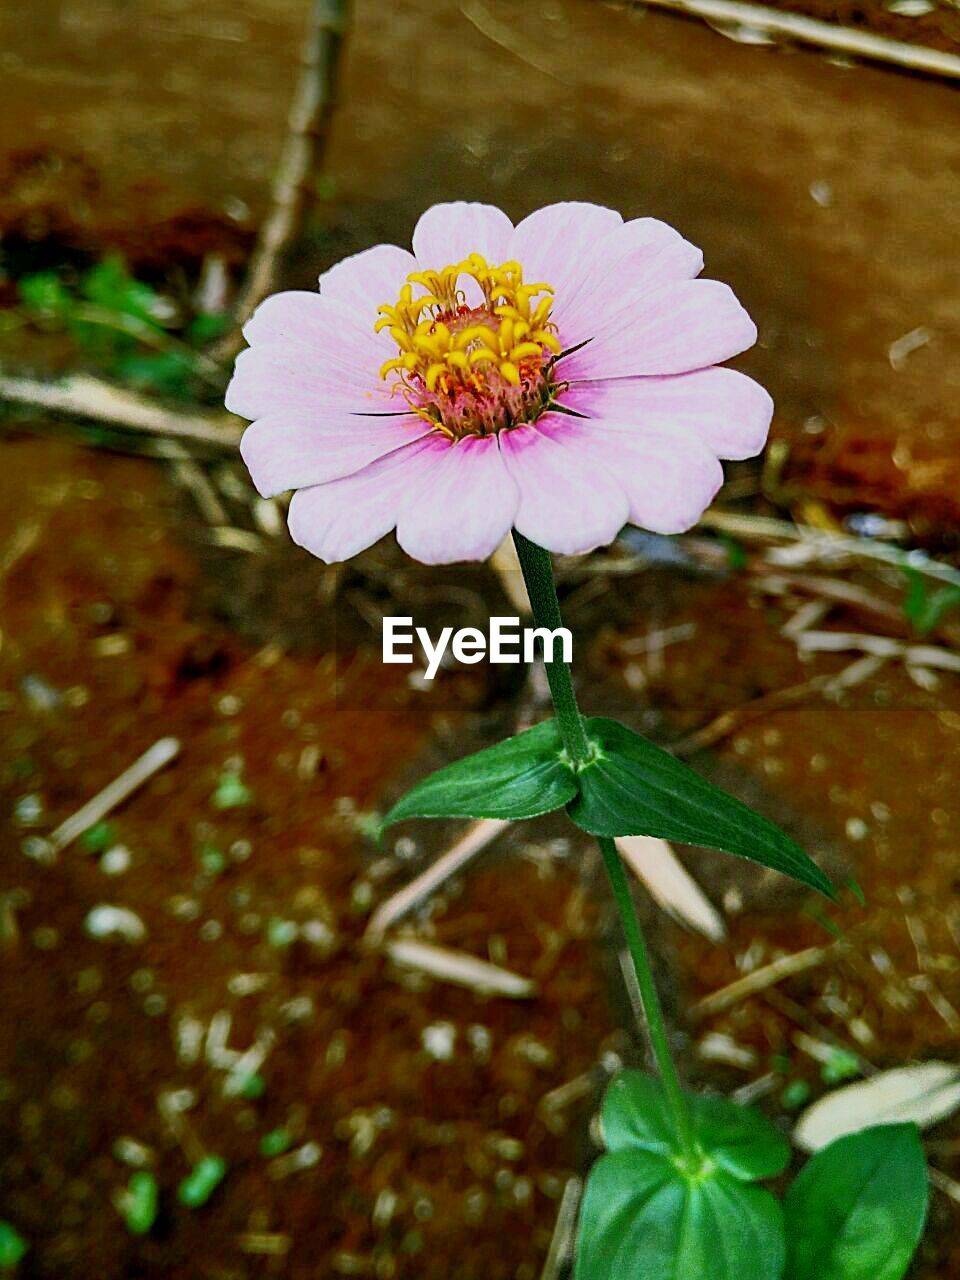 flower, petal, fragility, nature, flower head, beauty in nature, freshness, growth, blooming, leaf, plant, no people, outdoors, day, close-up, zinnia